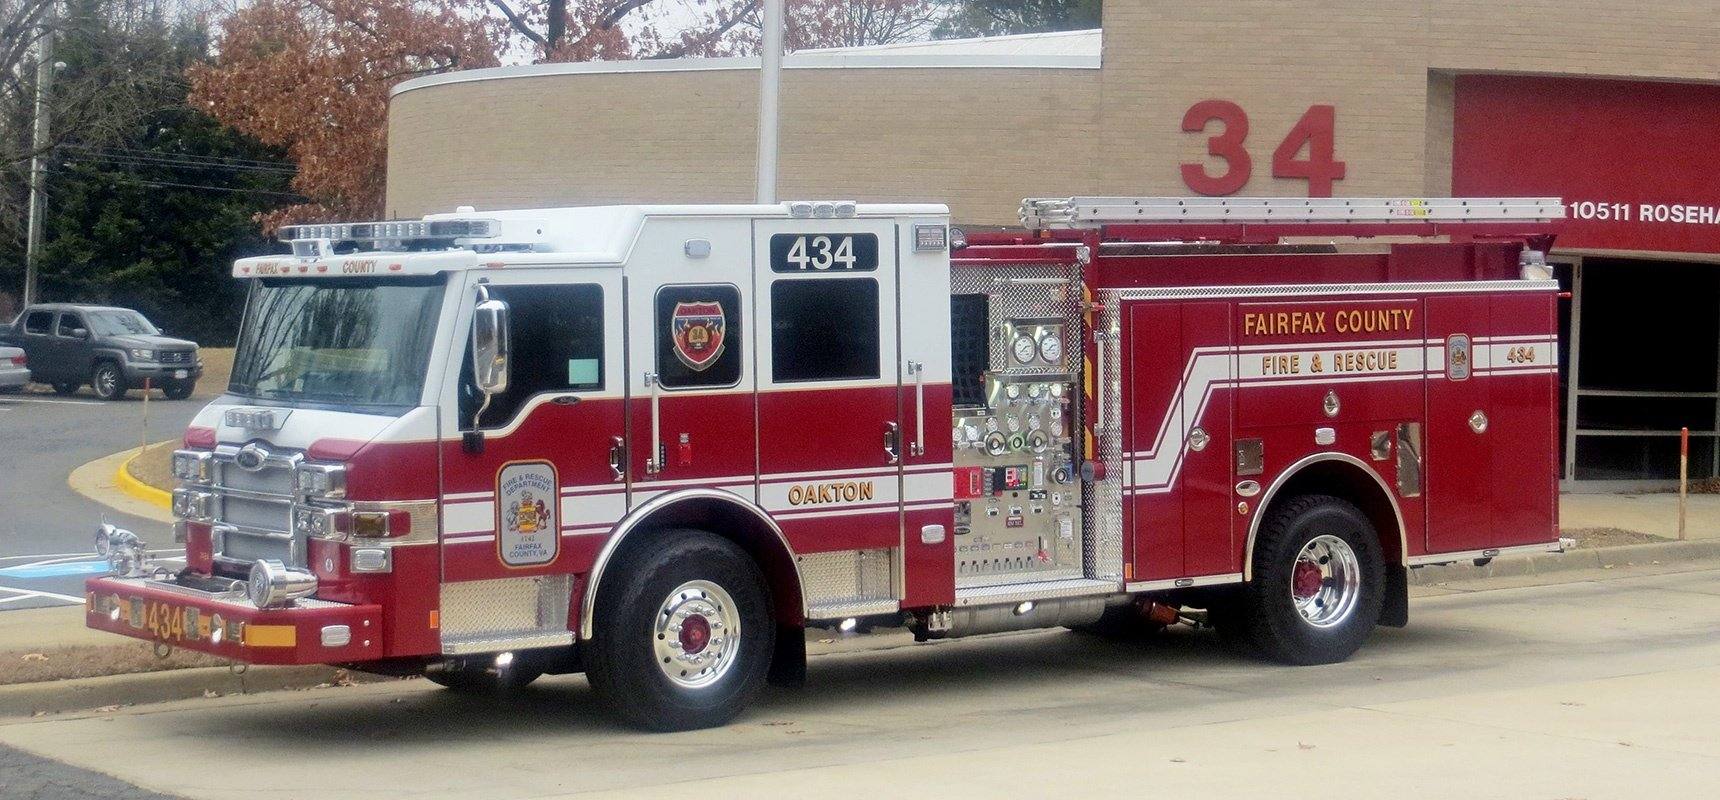 Pierce Places 100th Fire Apparatus with Fairfax County Fire and